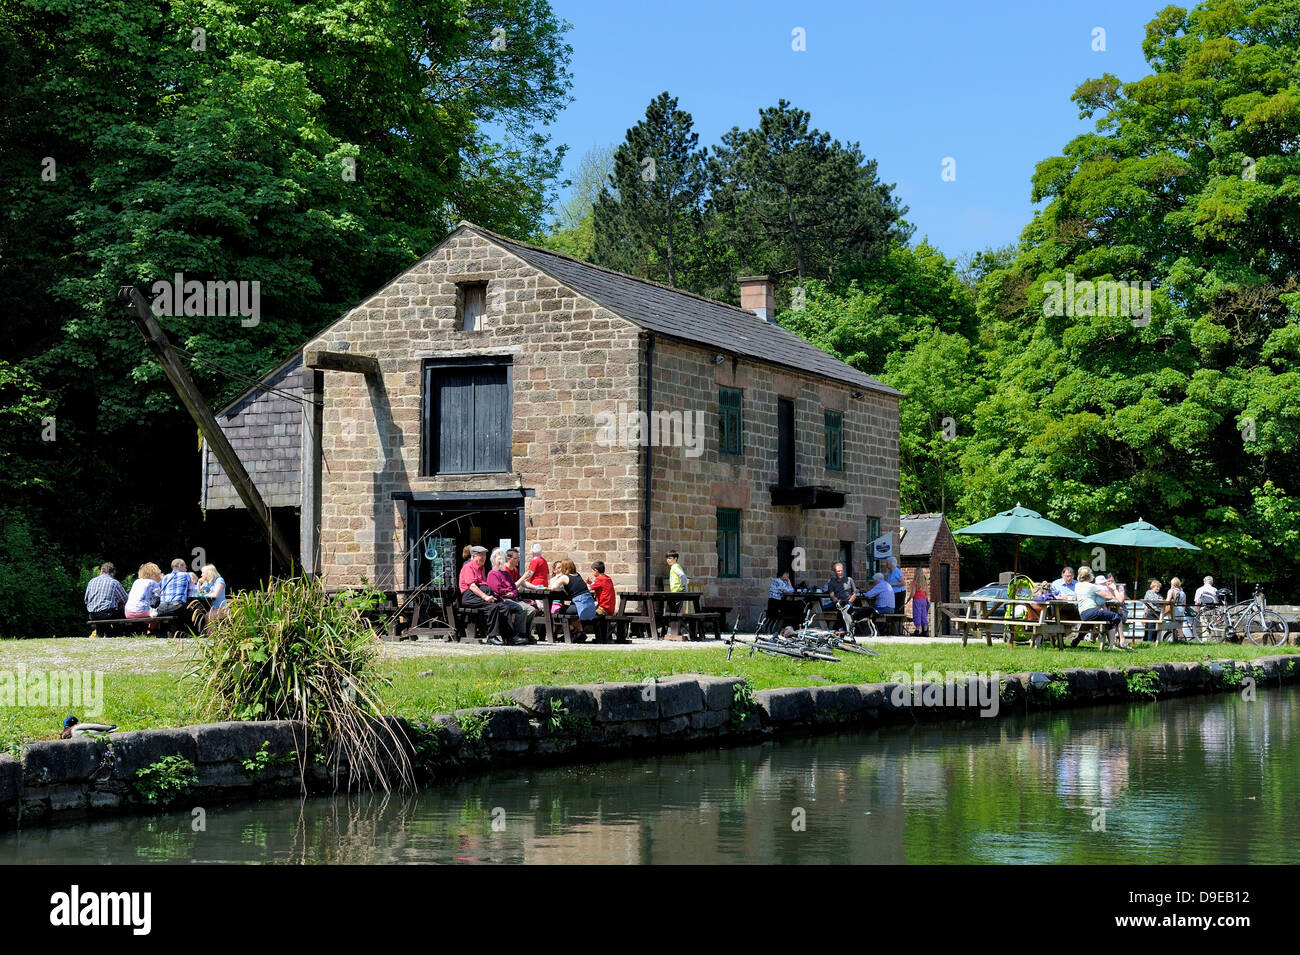 Cromford Canal Derbyshire England uk Stock Photo